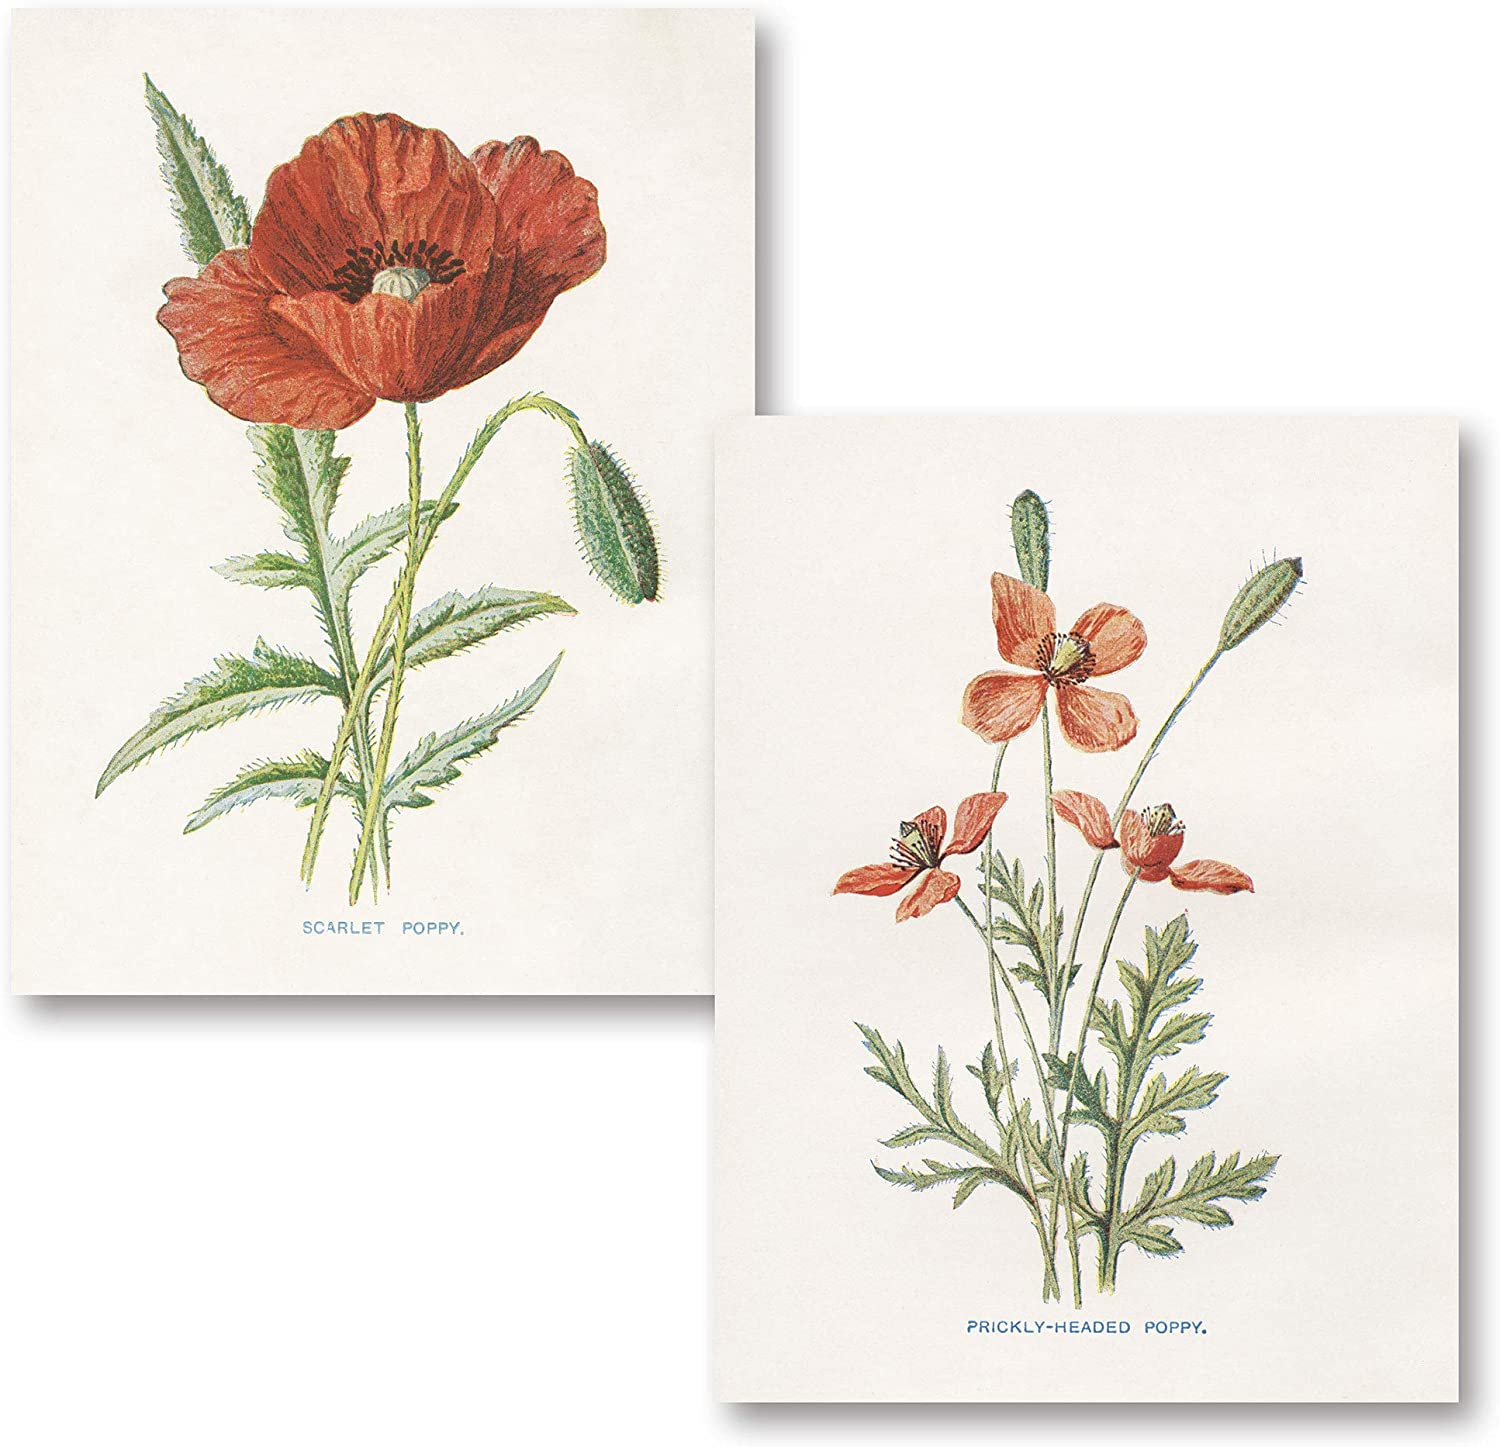 Lovely Old-Fashioned Botanical Scarlet Poppy and Prickly Headed Poppy Set by Gwendolyn Babbitt; Floral Decor; Two 11x14in Poster Prints